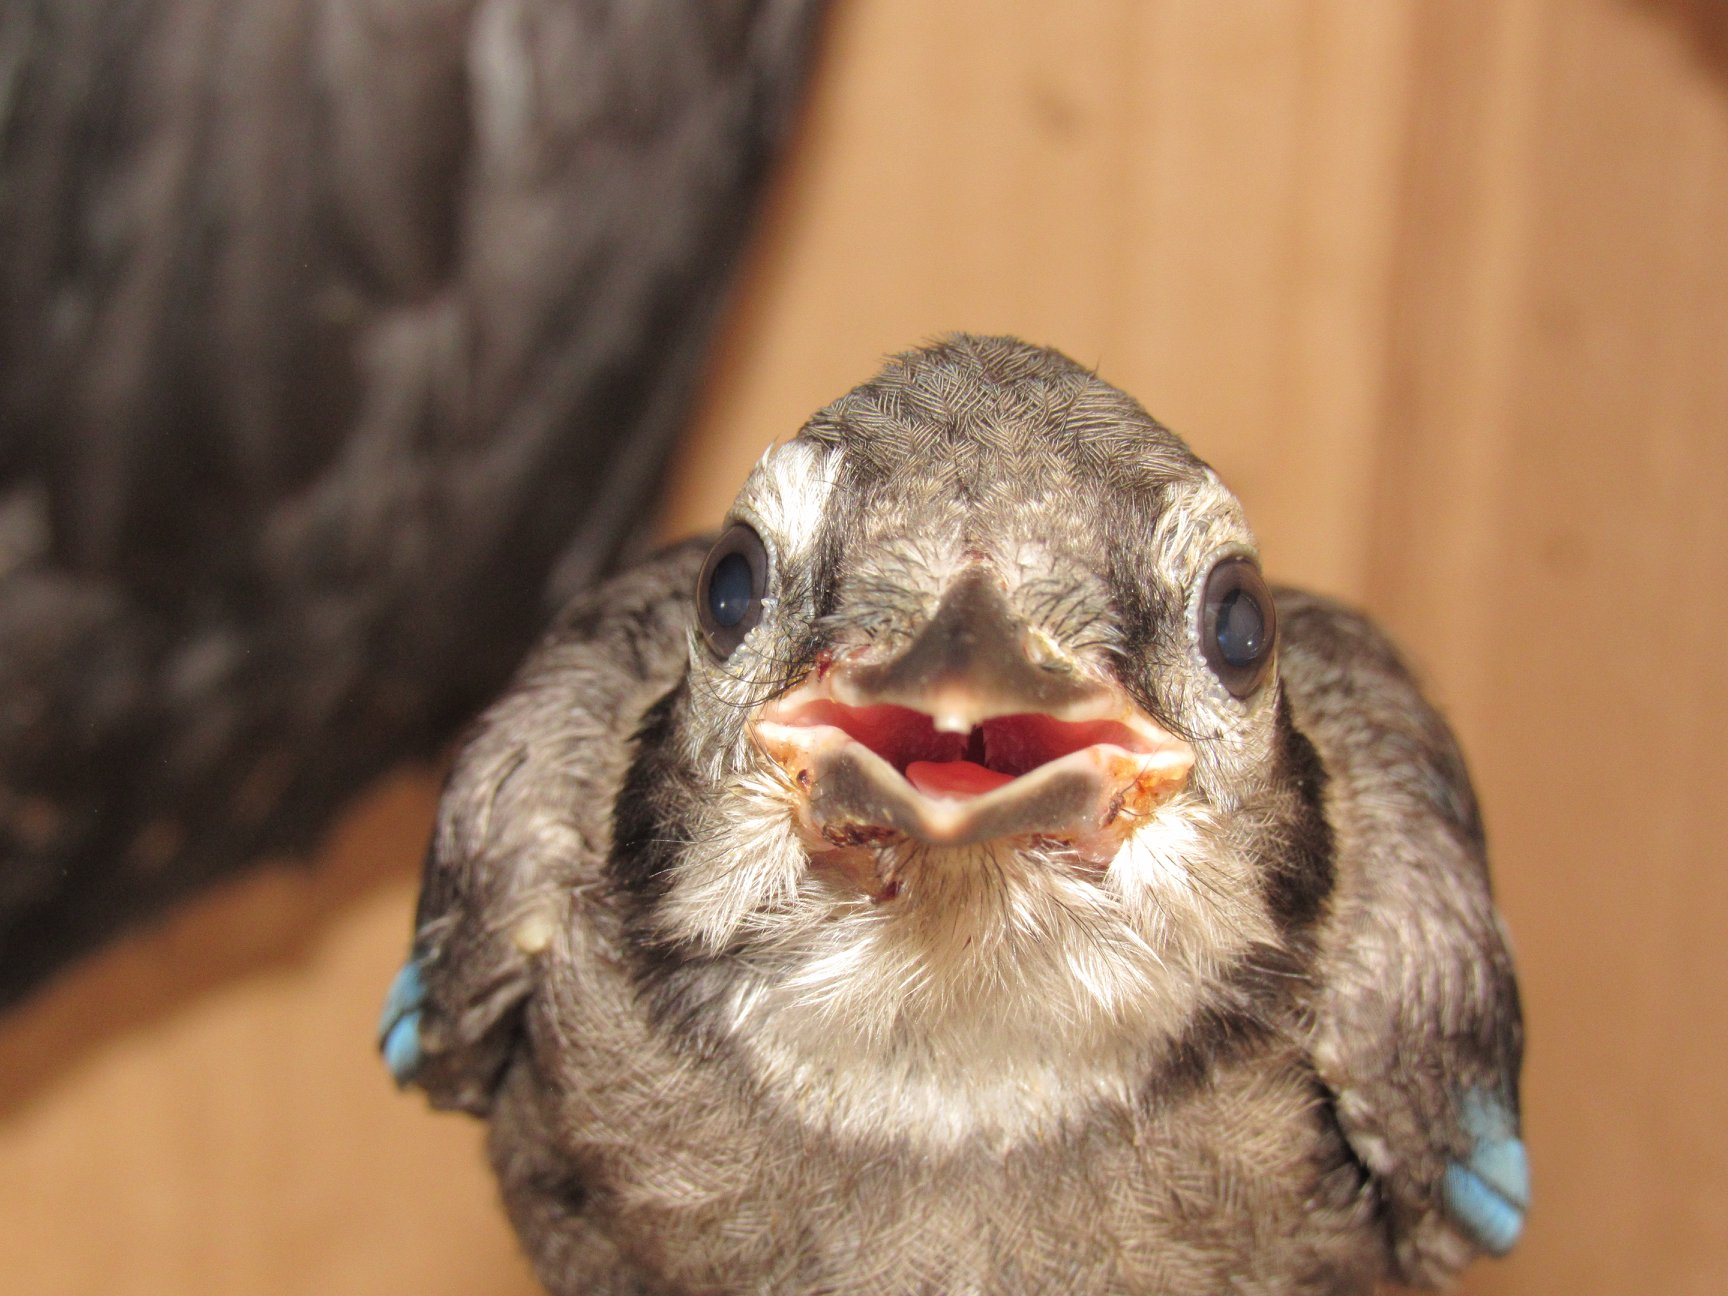 Blue Jay chick with black fly bites on his lower mandible.